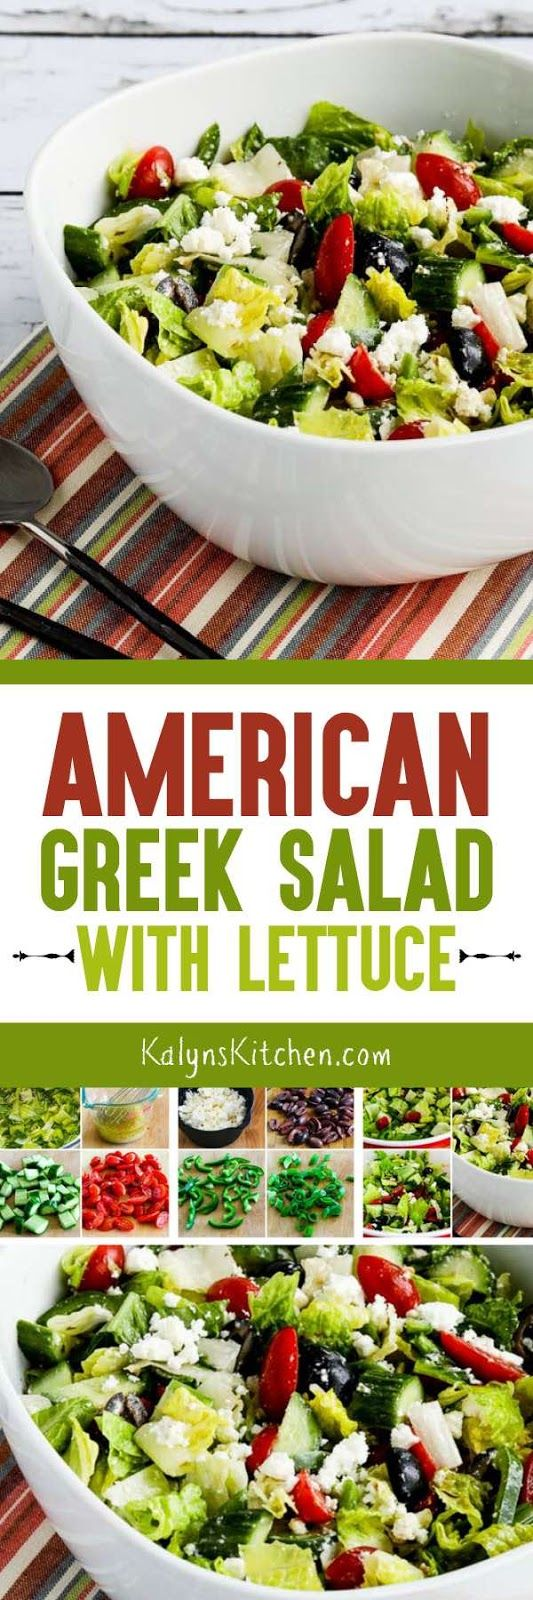 American Greek Salad (with Lettuce